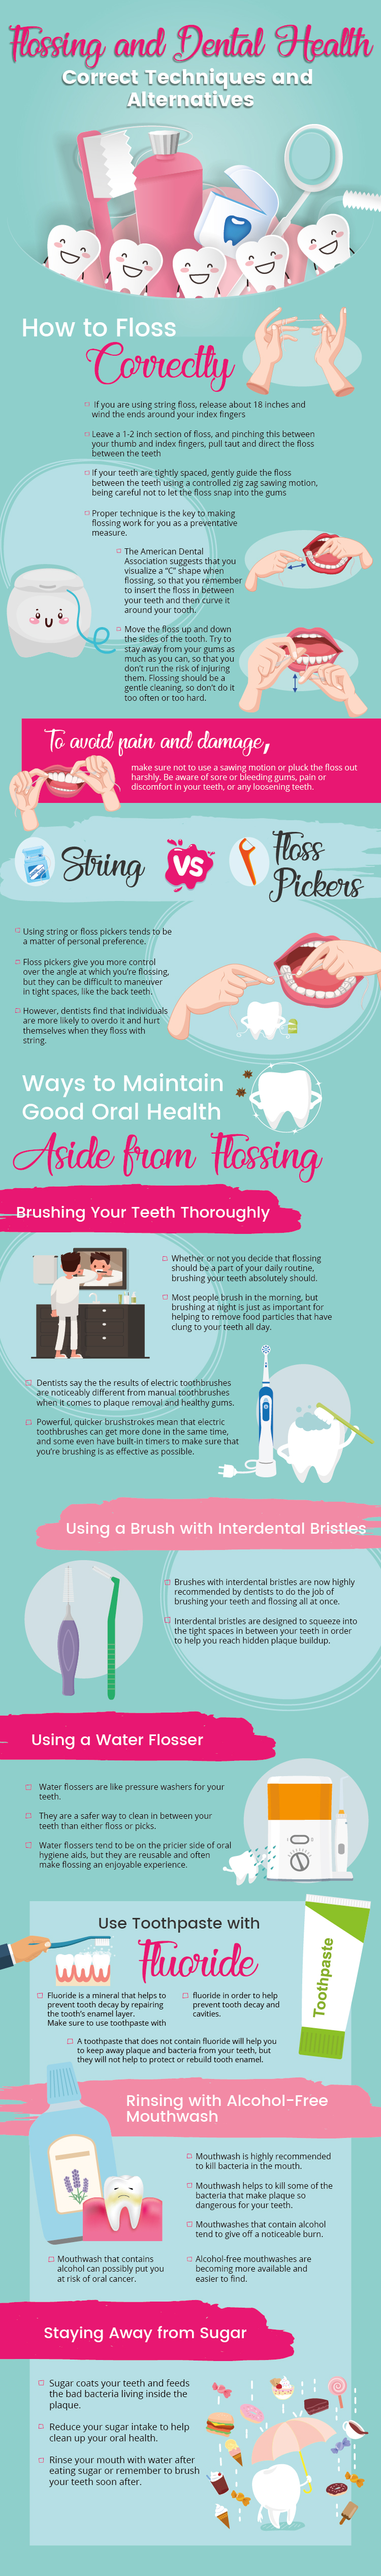 flossing infographic - Is Flossing Really Beneficial?